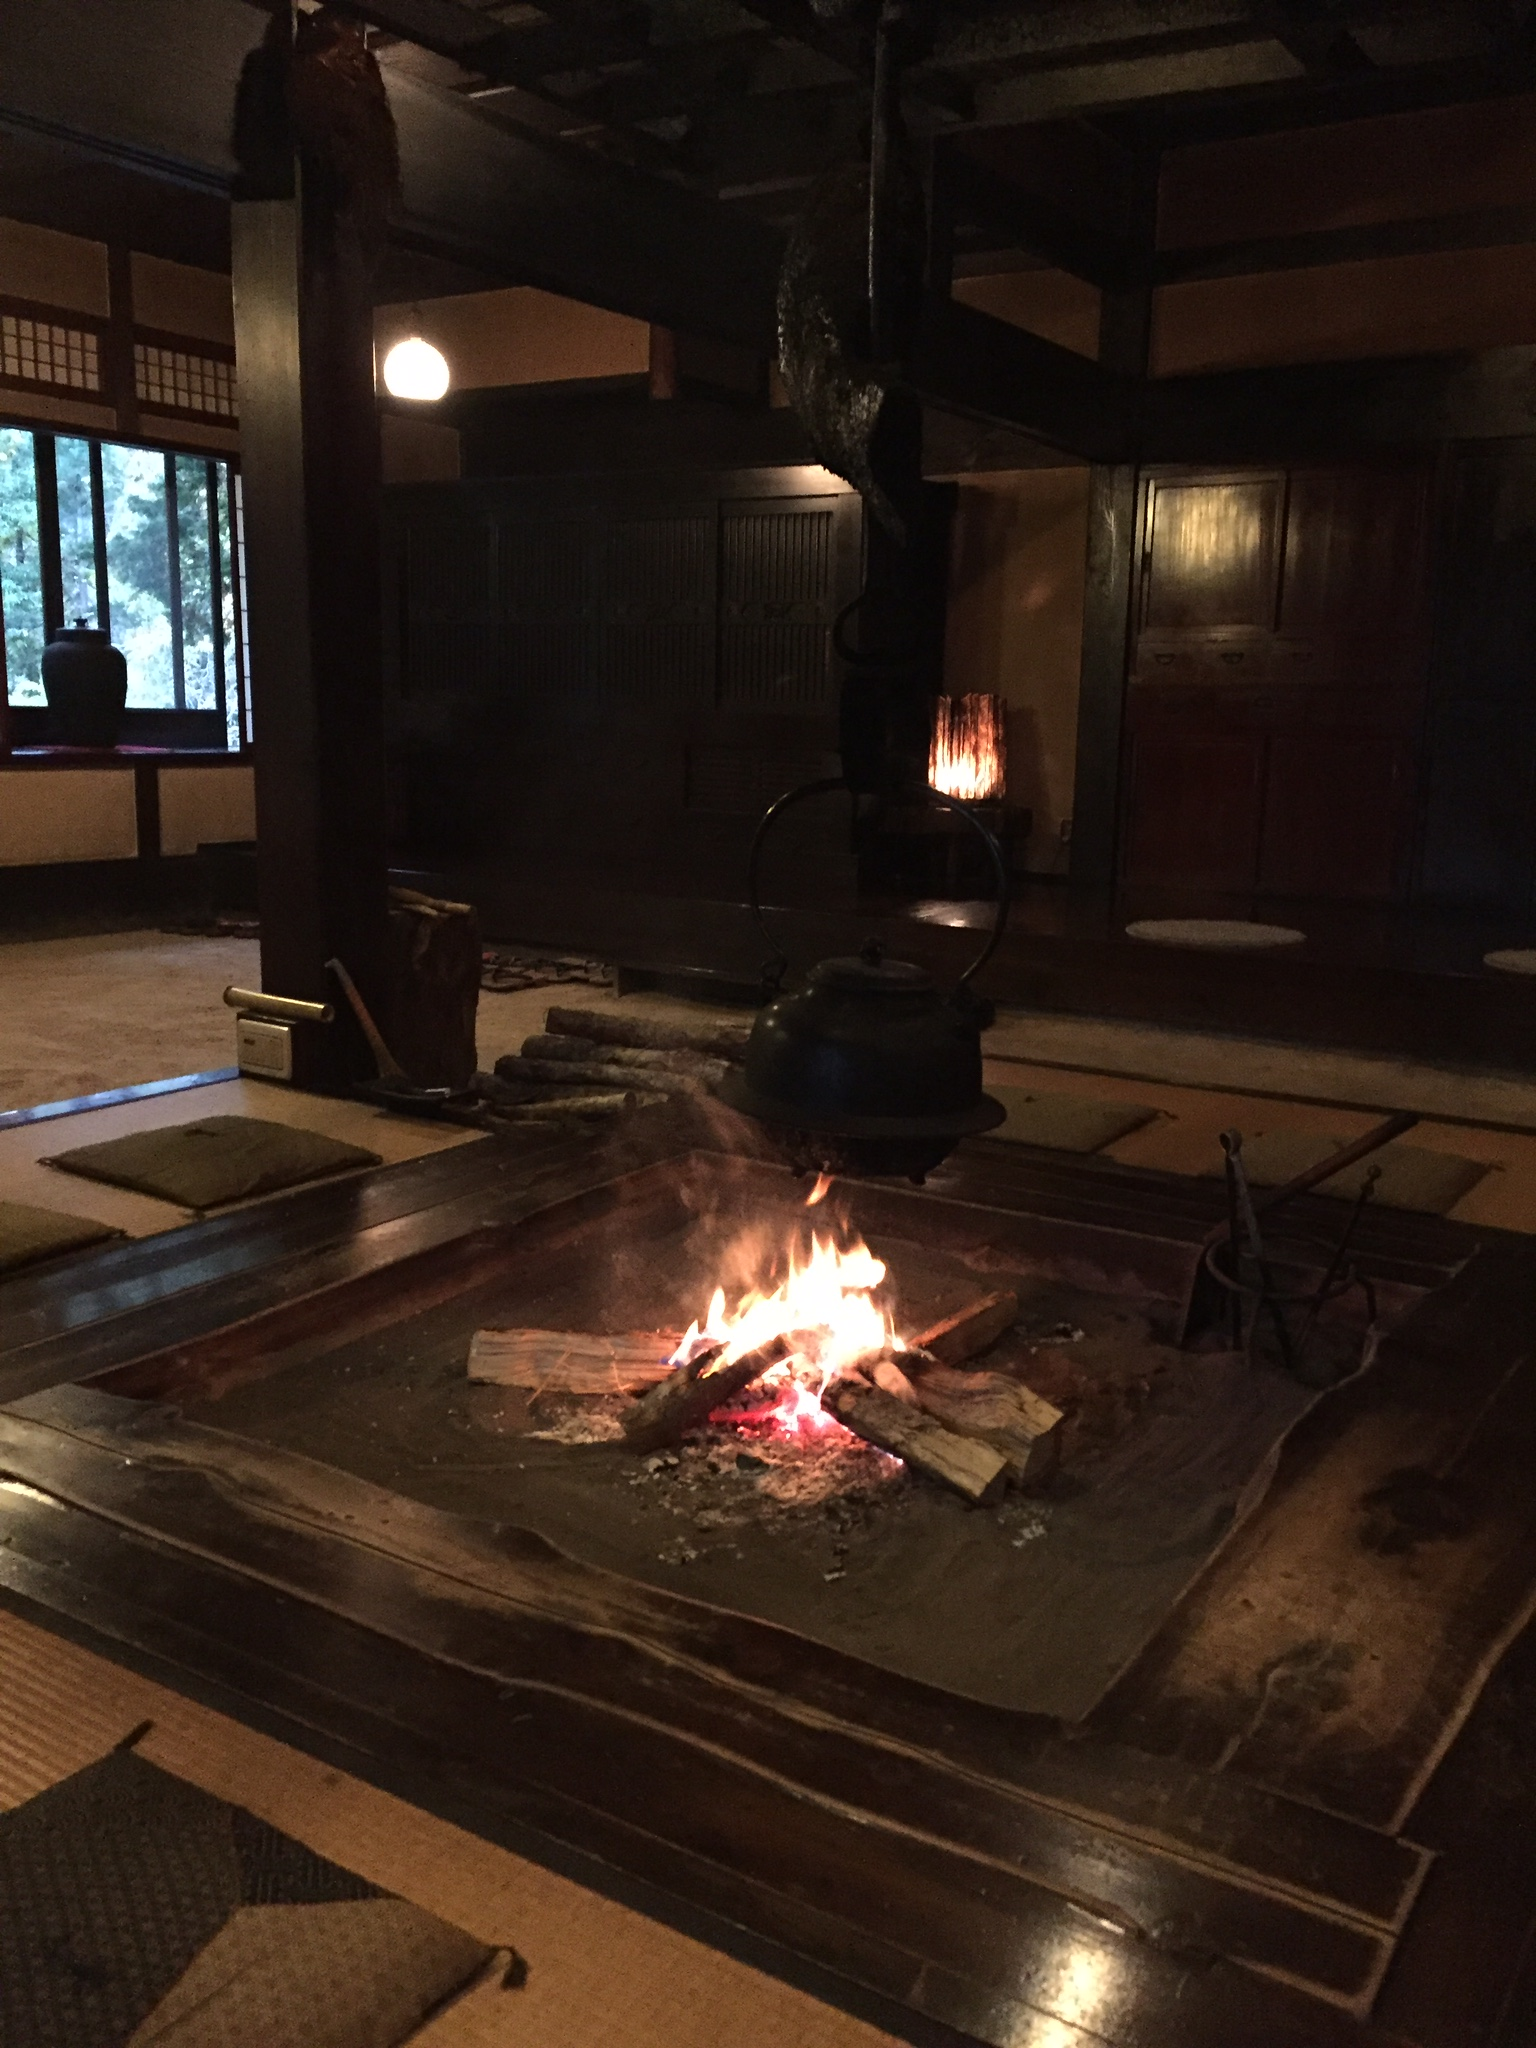 Fireplace in the main room